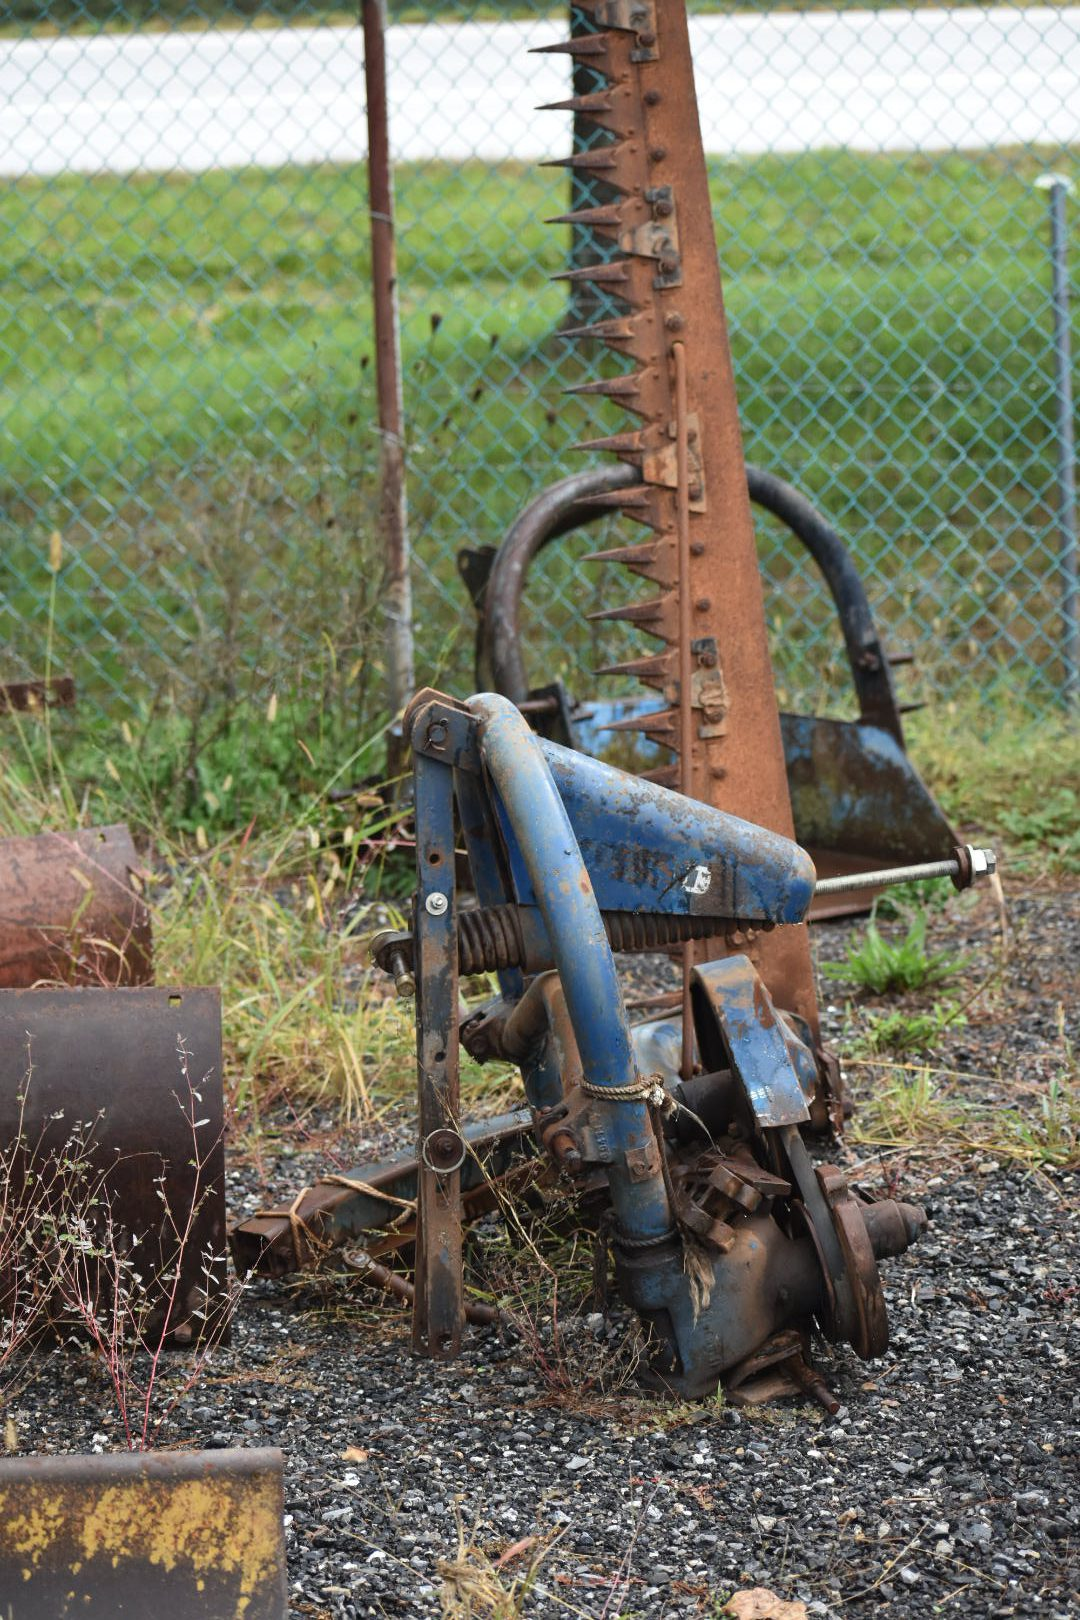 FORD 501 SICKLE MOWER Image